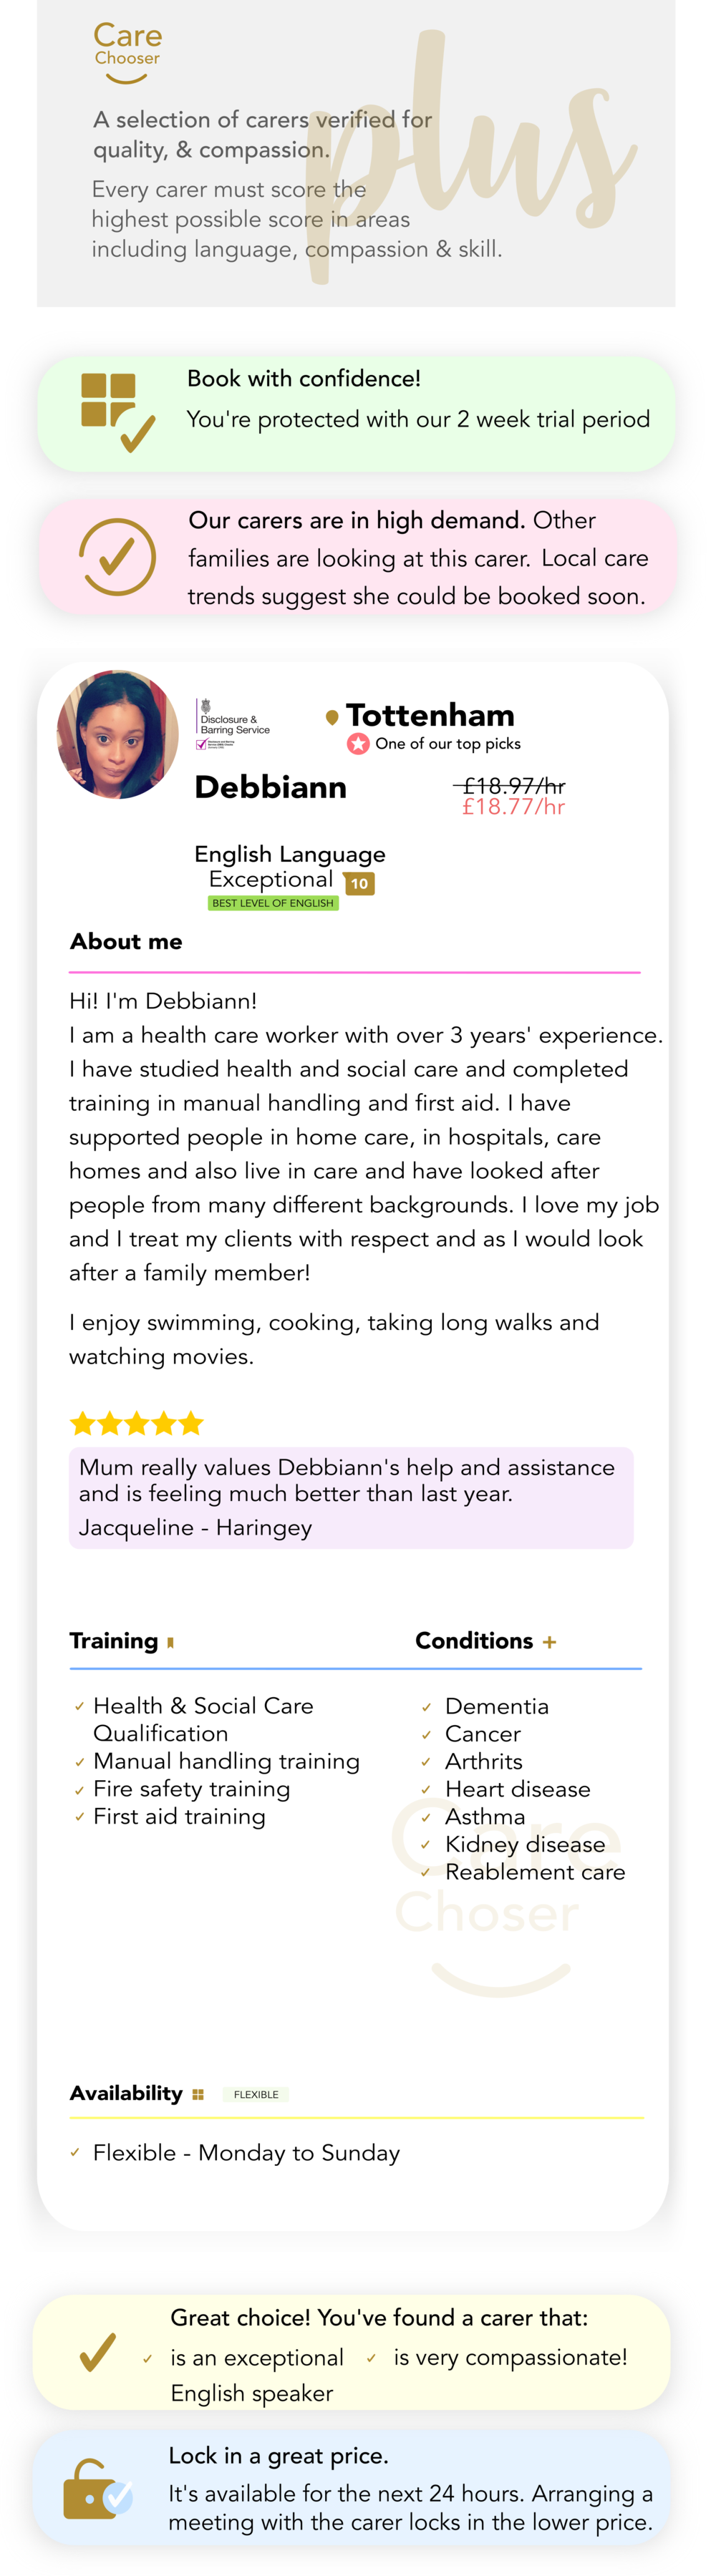 DebbiAnn2 - home care in Tottenham 2019.png